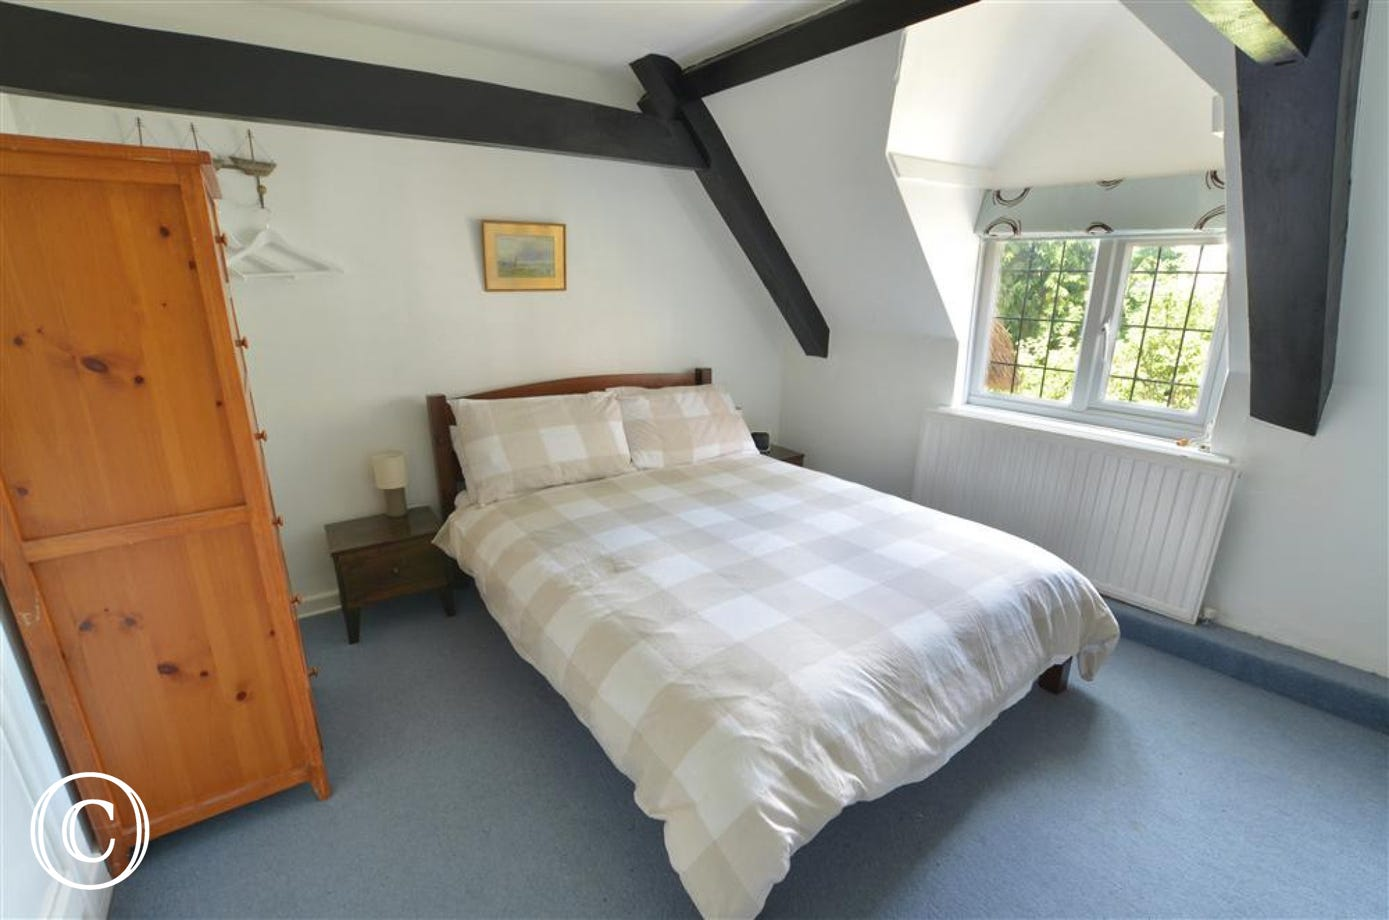 View of bedroom 2 showing double bed, beams, dormer window dressed with a blind, with radiator below.